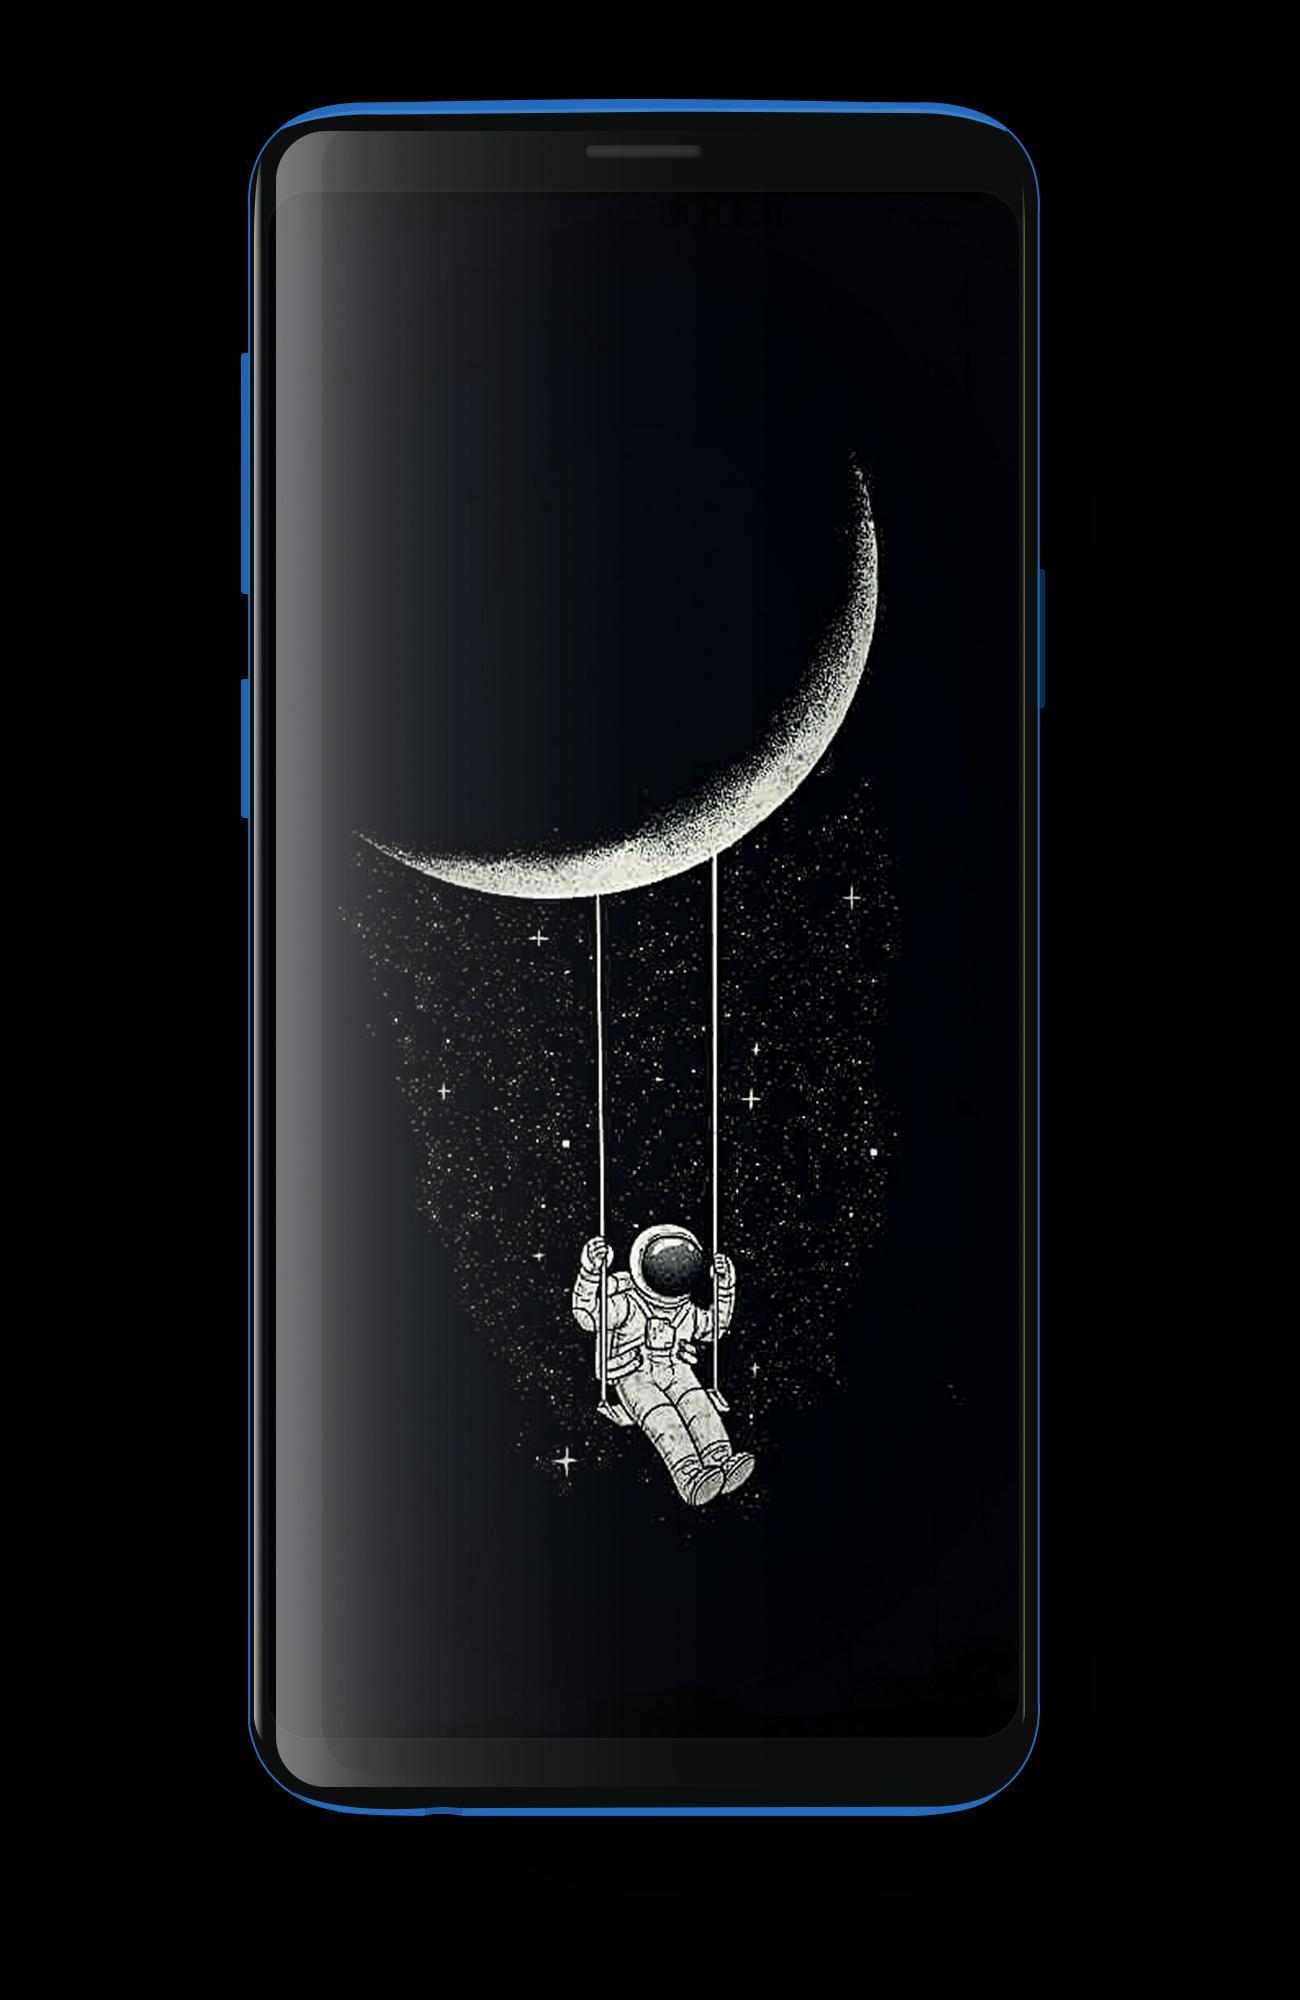 Black Aesthetic Wallpapers Hd For Android Apk Download